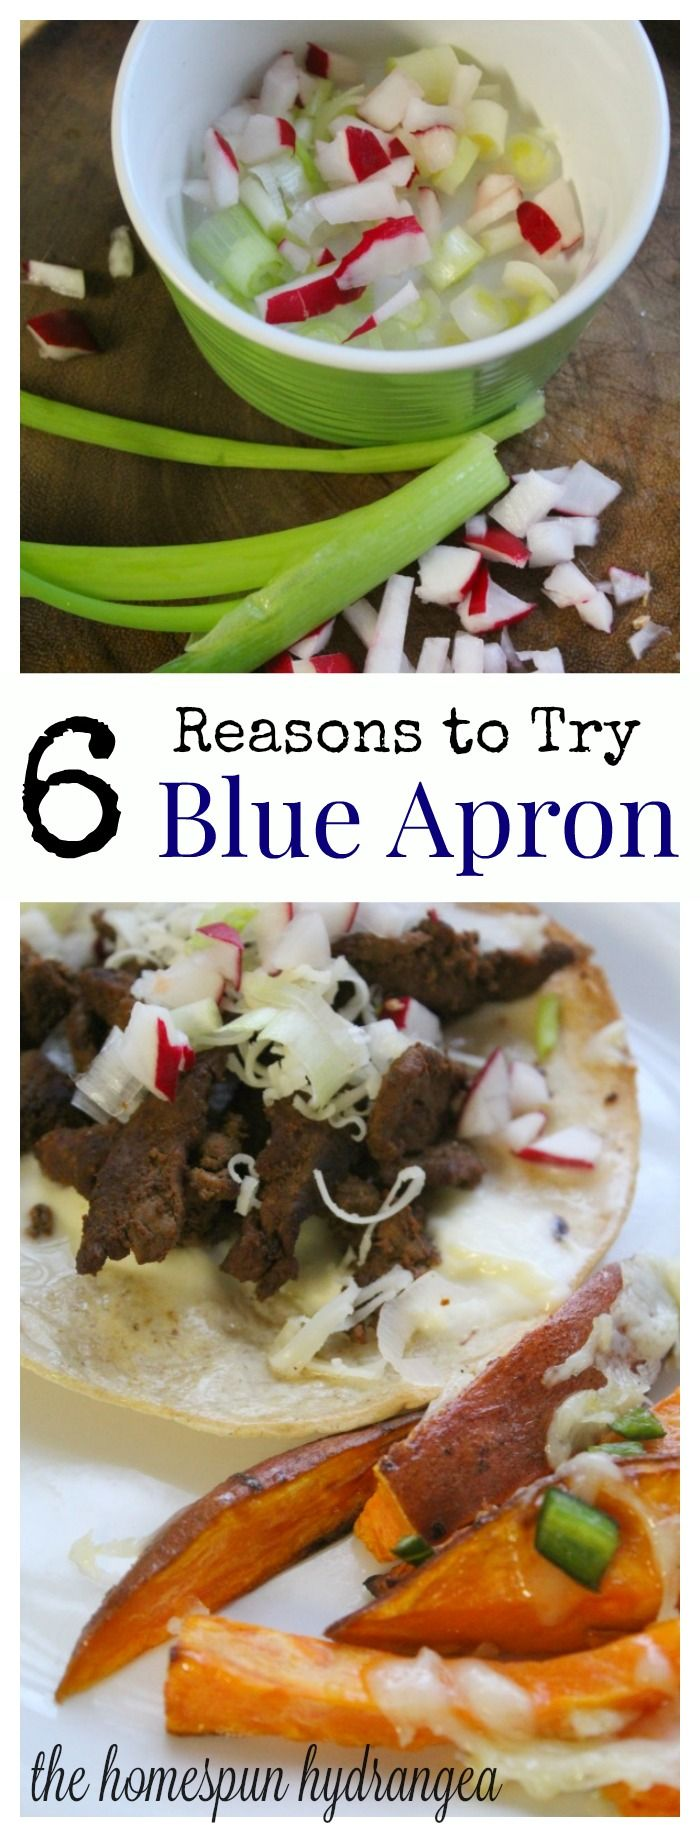 110 best meals delivered images on pinterest meals delivered 6 reasons to try blue apron meal boxes get free meals forumfinder Choice Image